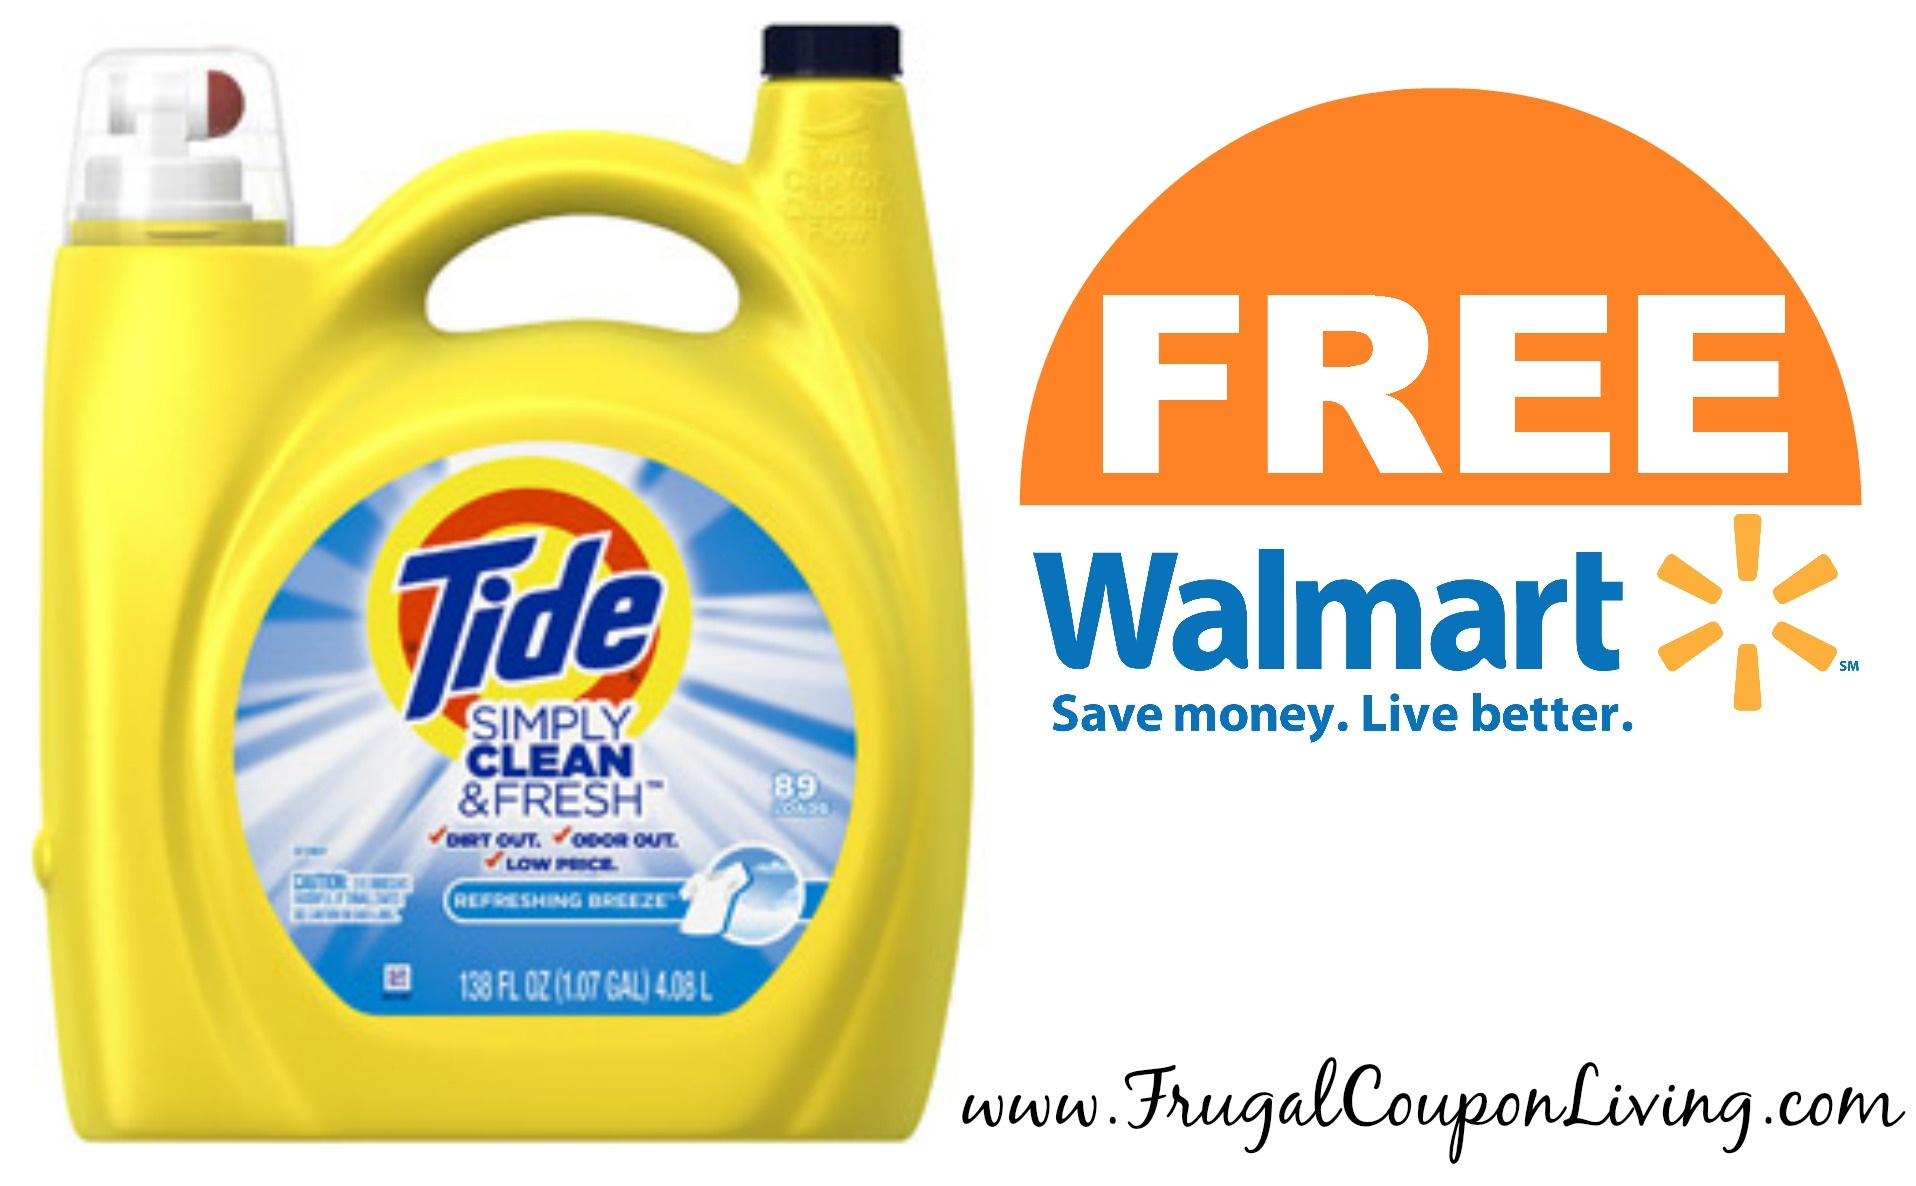 Tide Coupons Detergentdeal Starting At Each Laundry Room Wall Cabinets - Free Detergent Coupons Printable